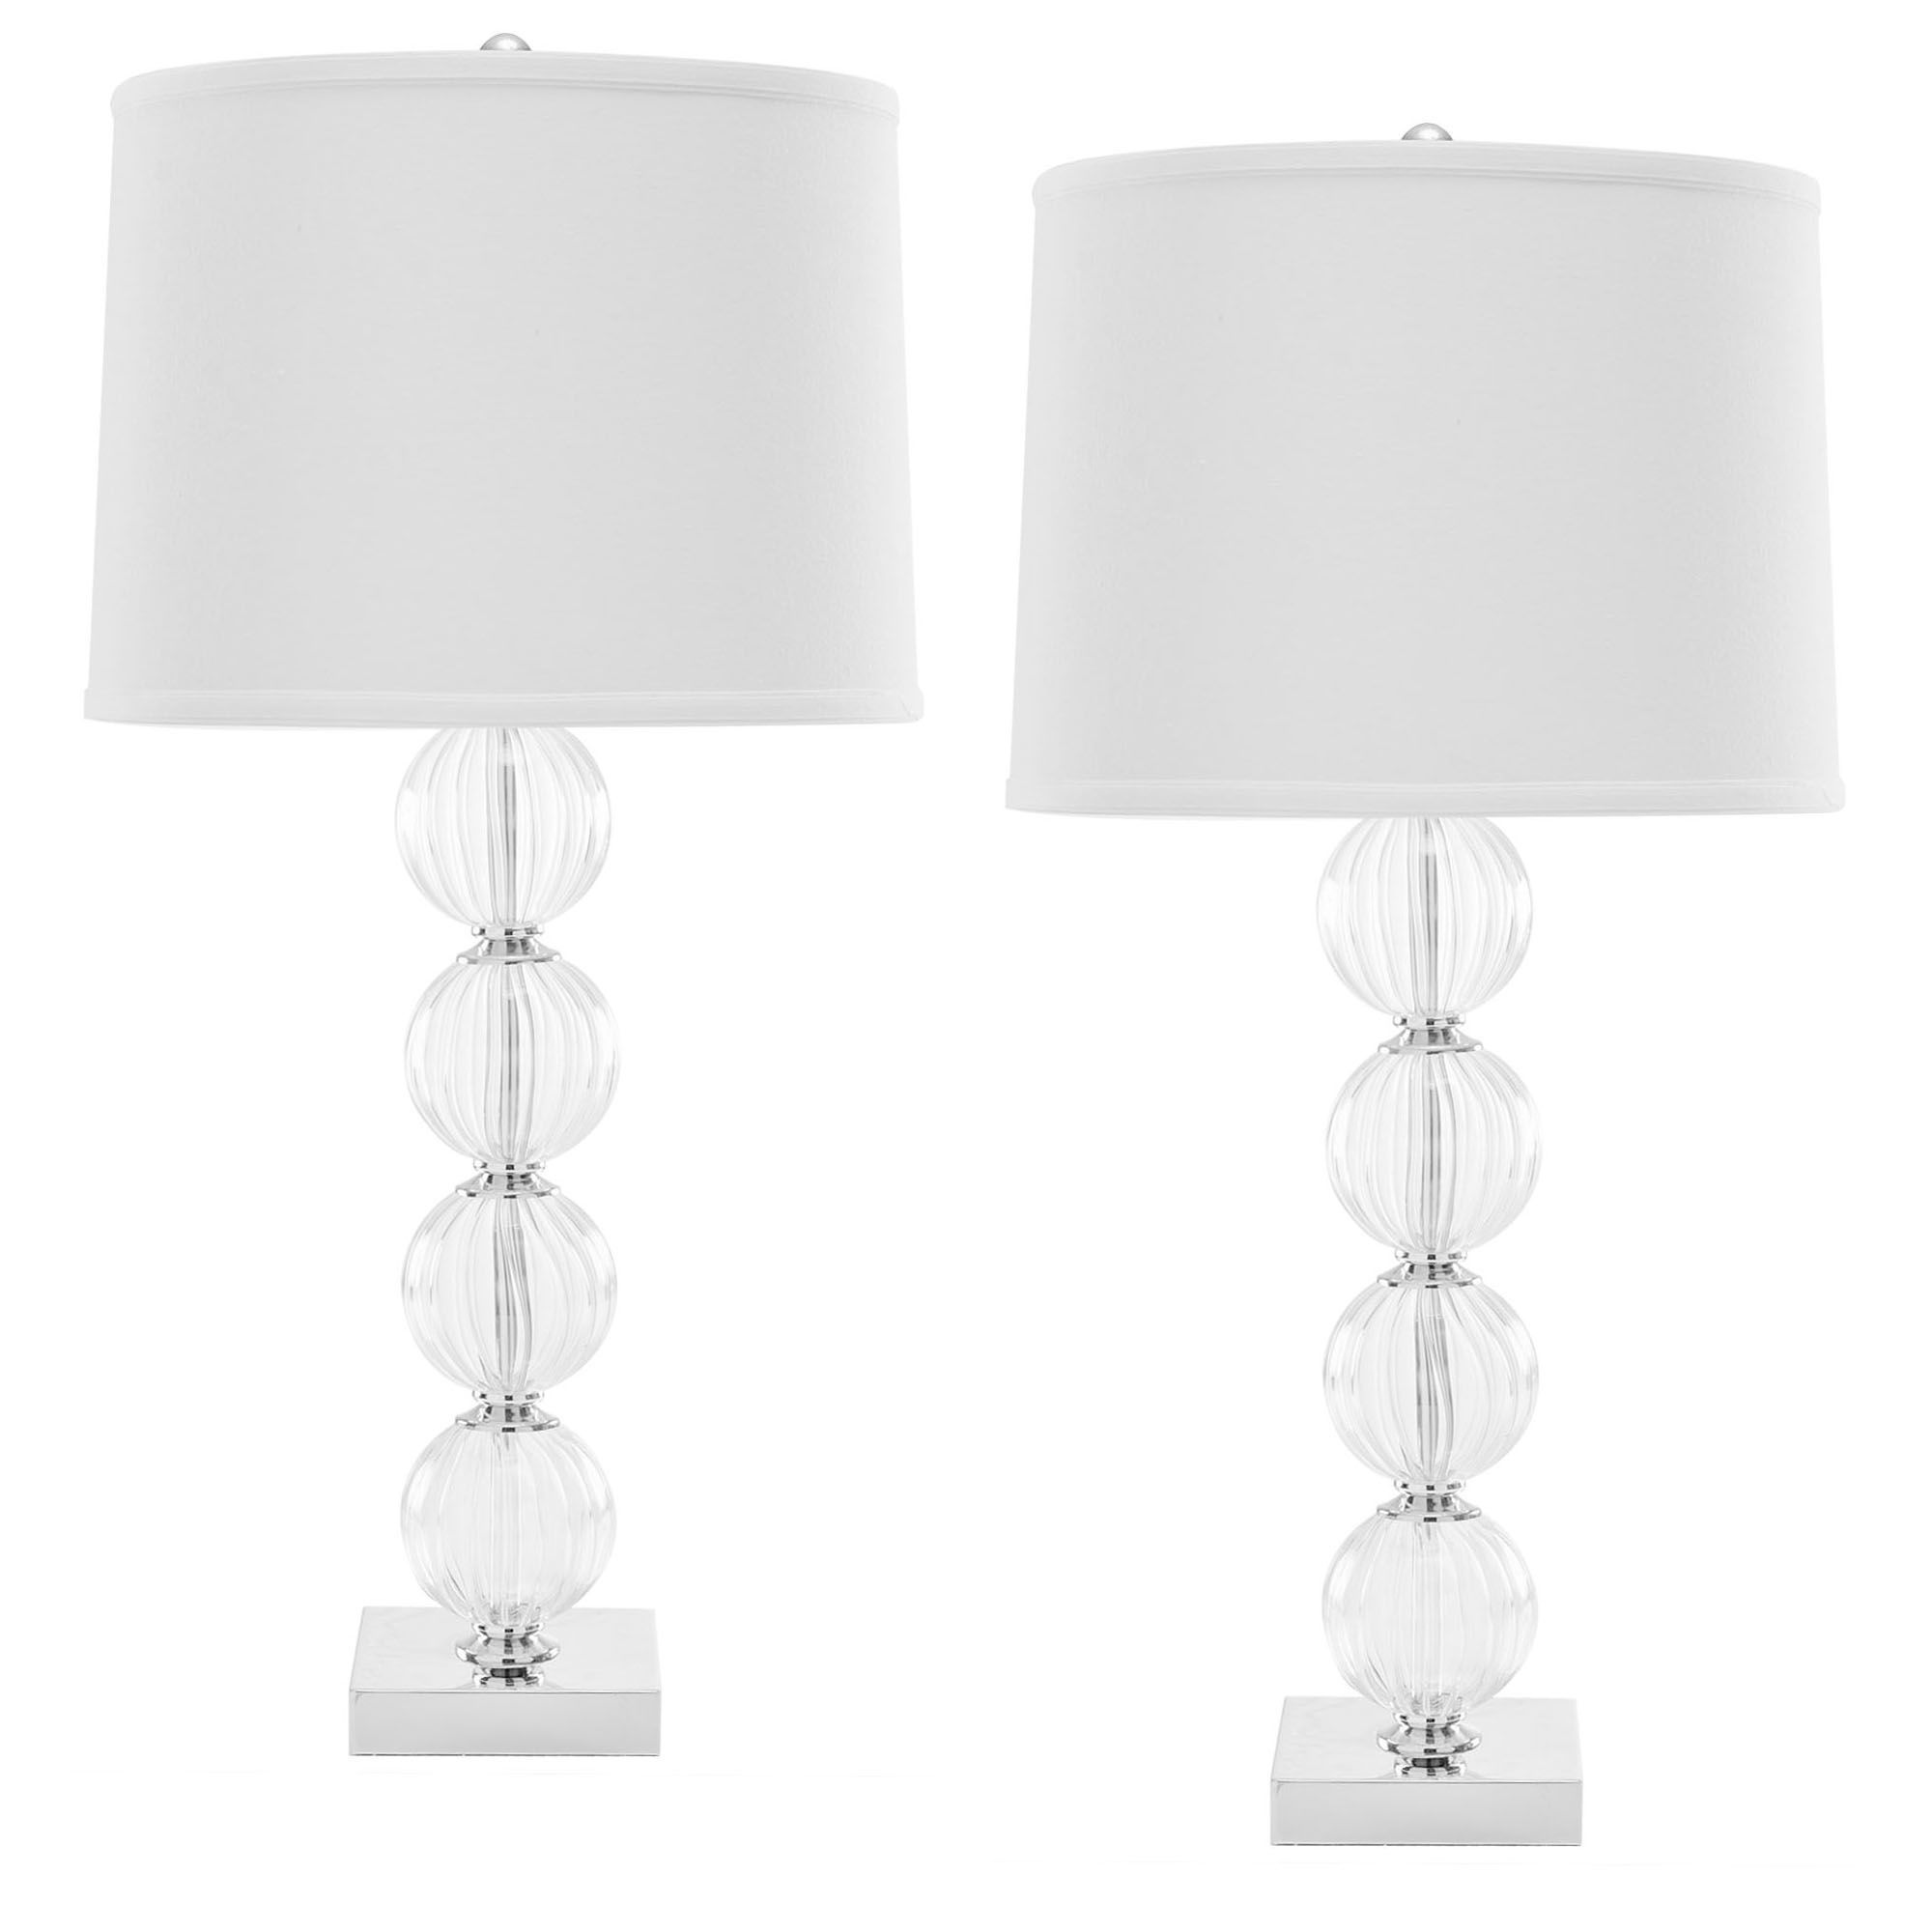 Explore Glass Lamps, Glass Lamp Base, And More!